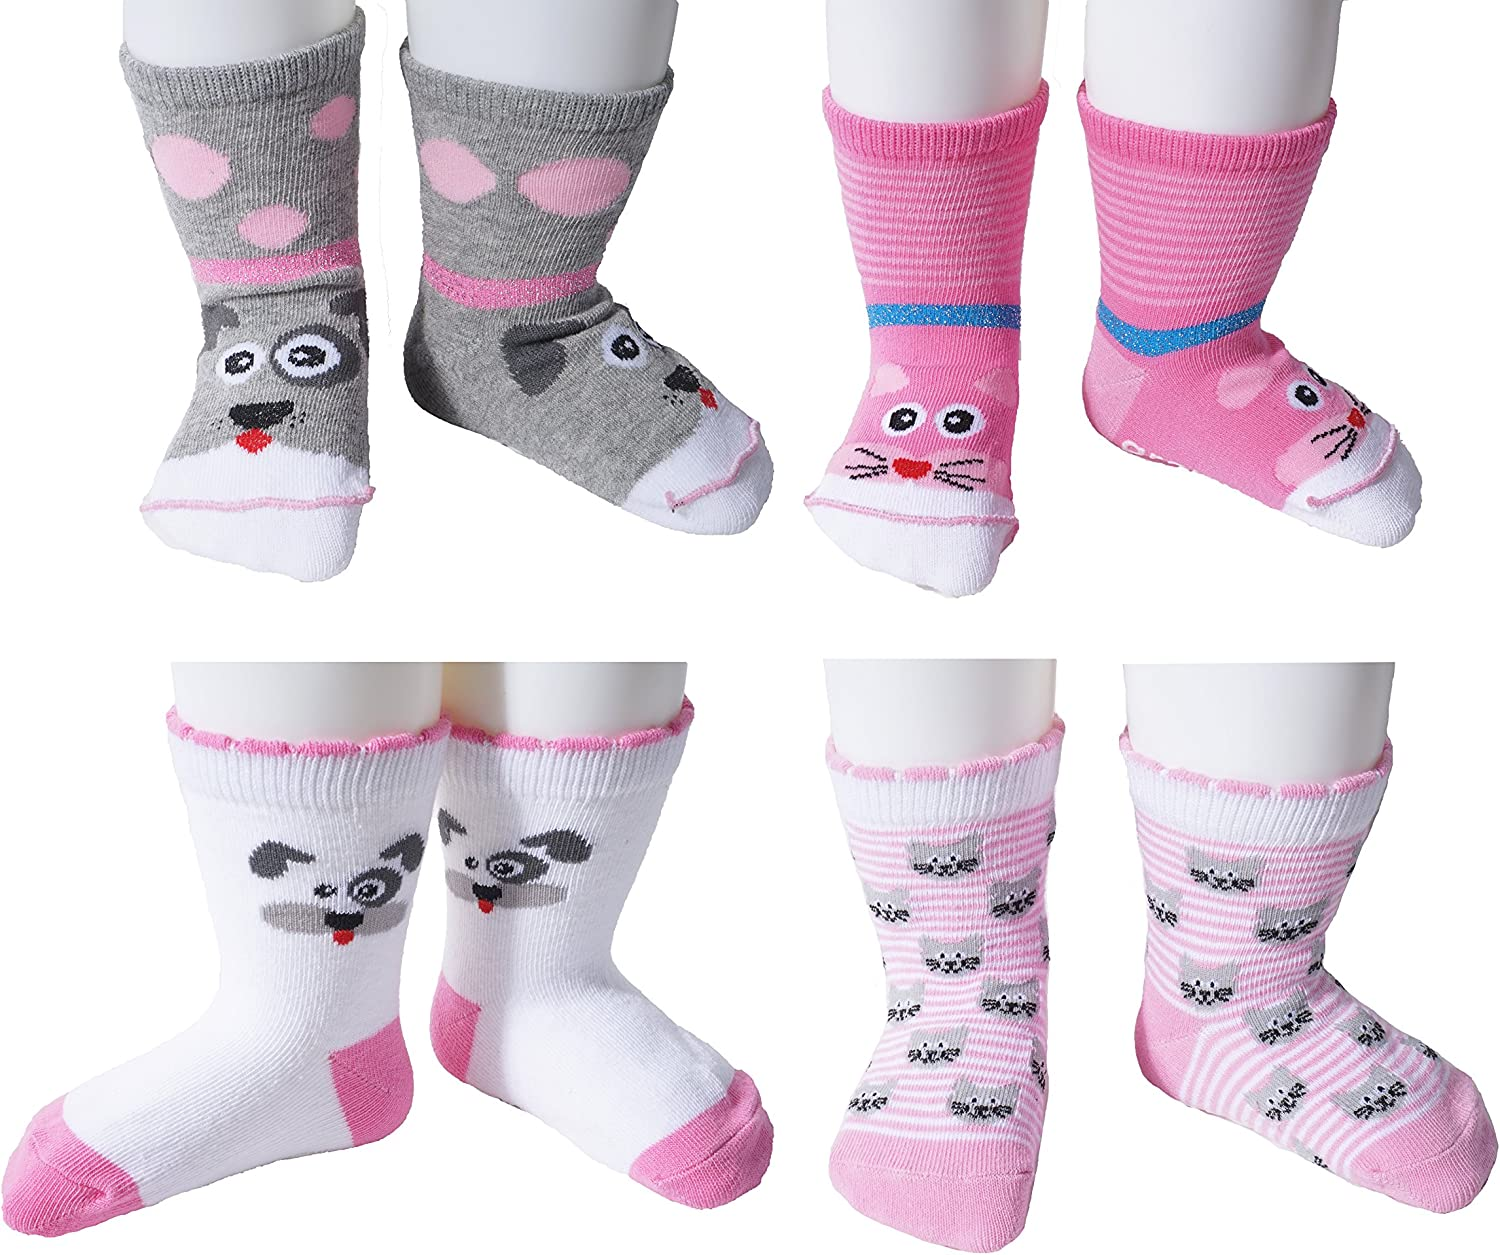 growbabygrow Boys & Girls Baby Toddler Kids Cotton Crew Socks with Grippers(12months~4years)